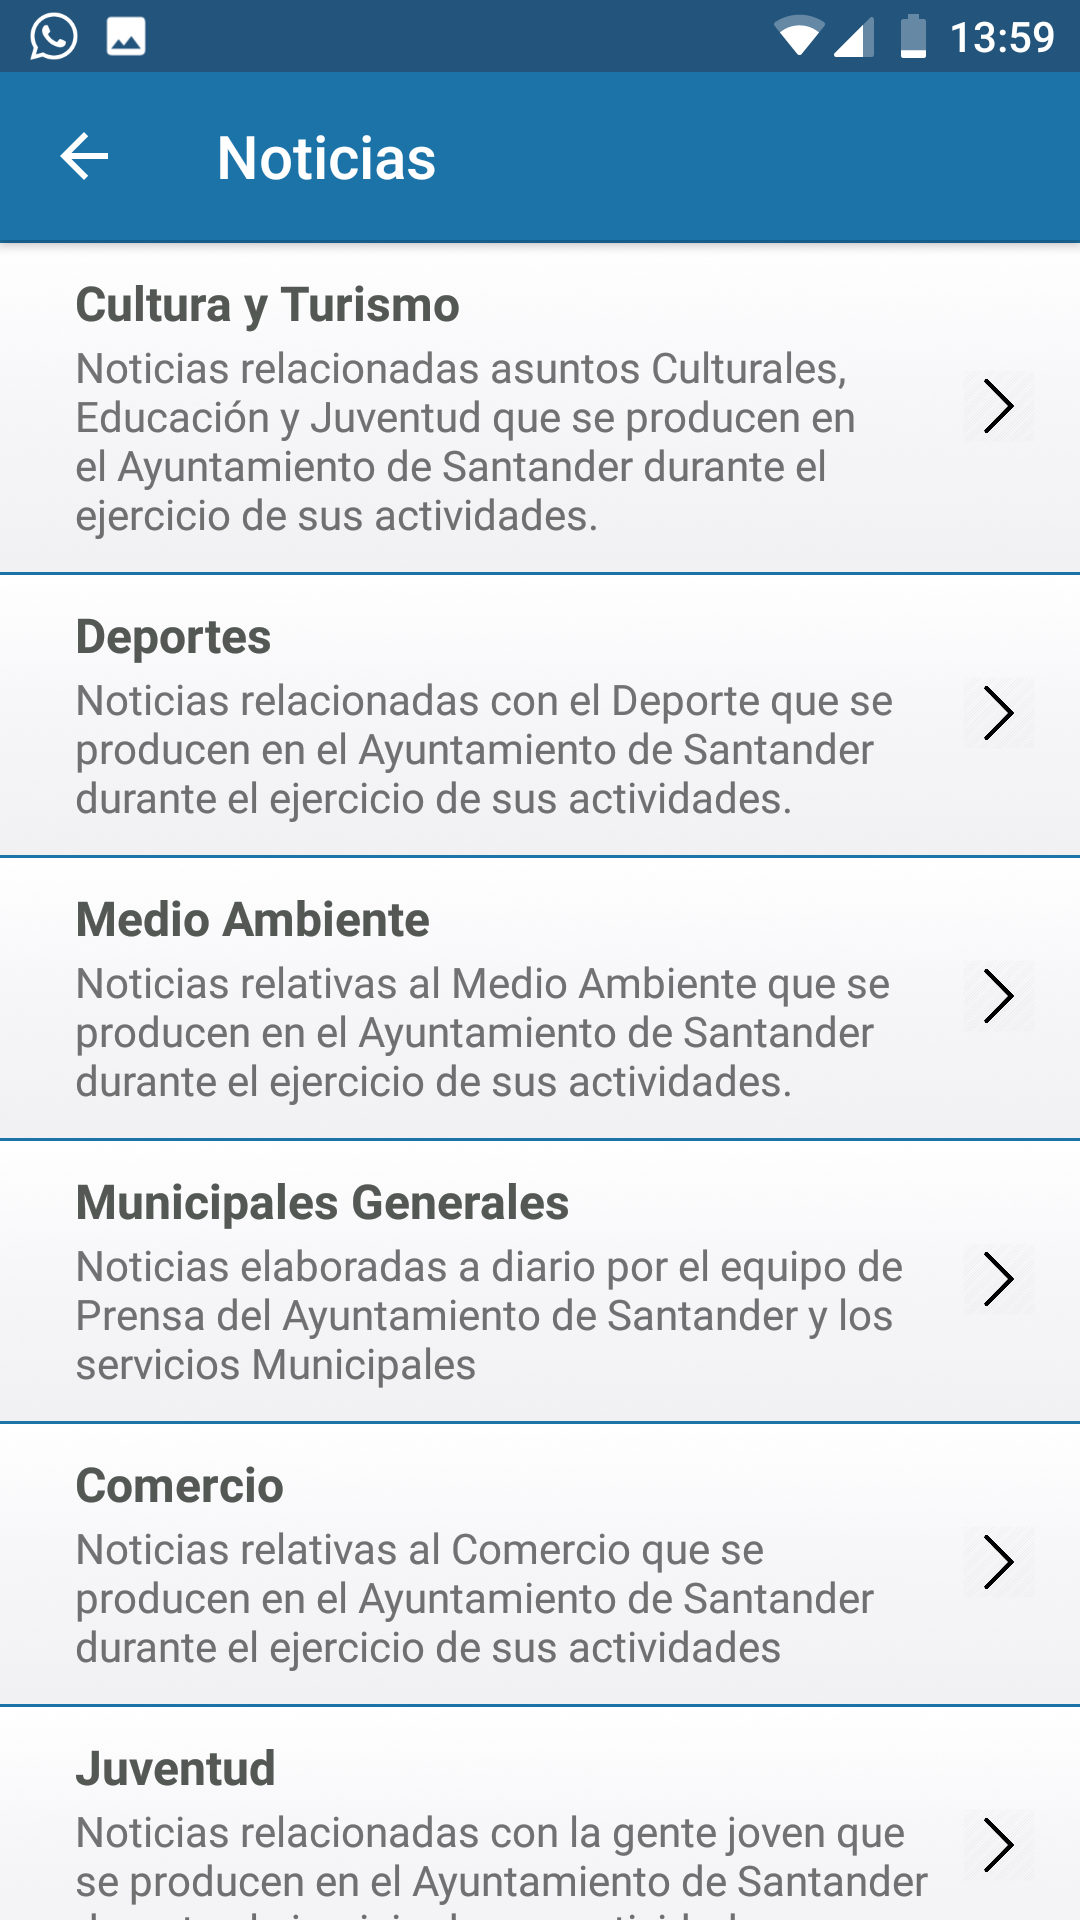 http://datos.santander.es/wp-content/uploads/2019/04/Screenshot_20190410-135908_1.png